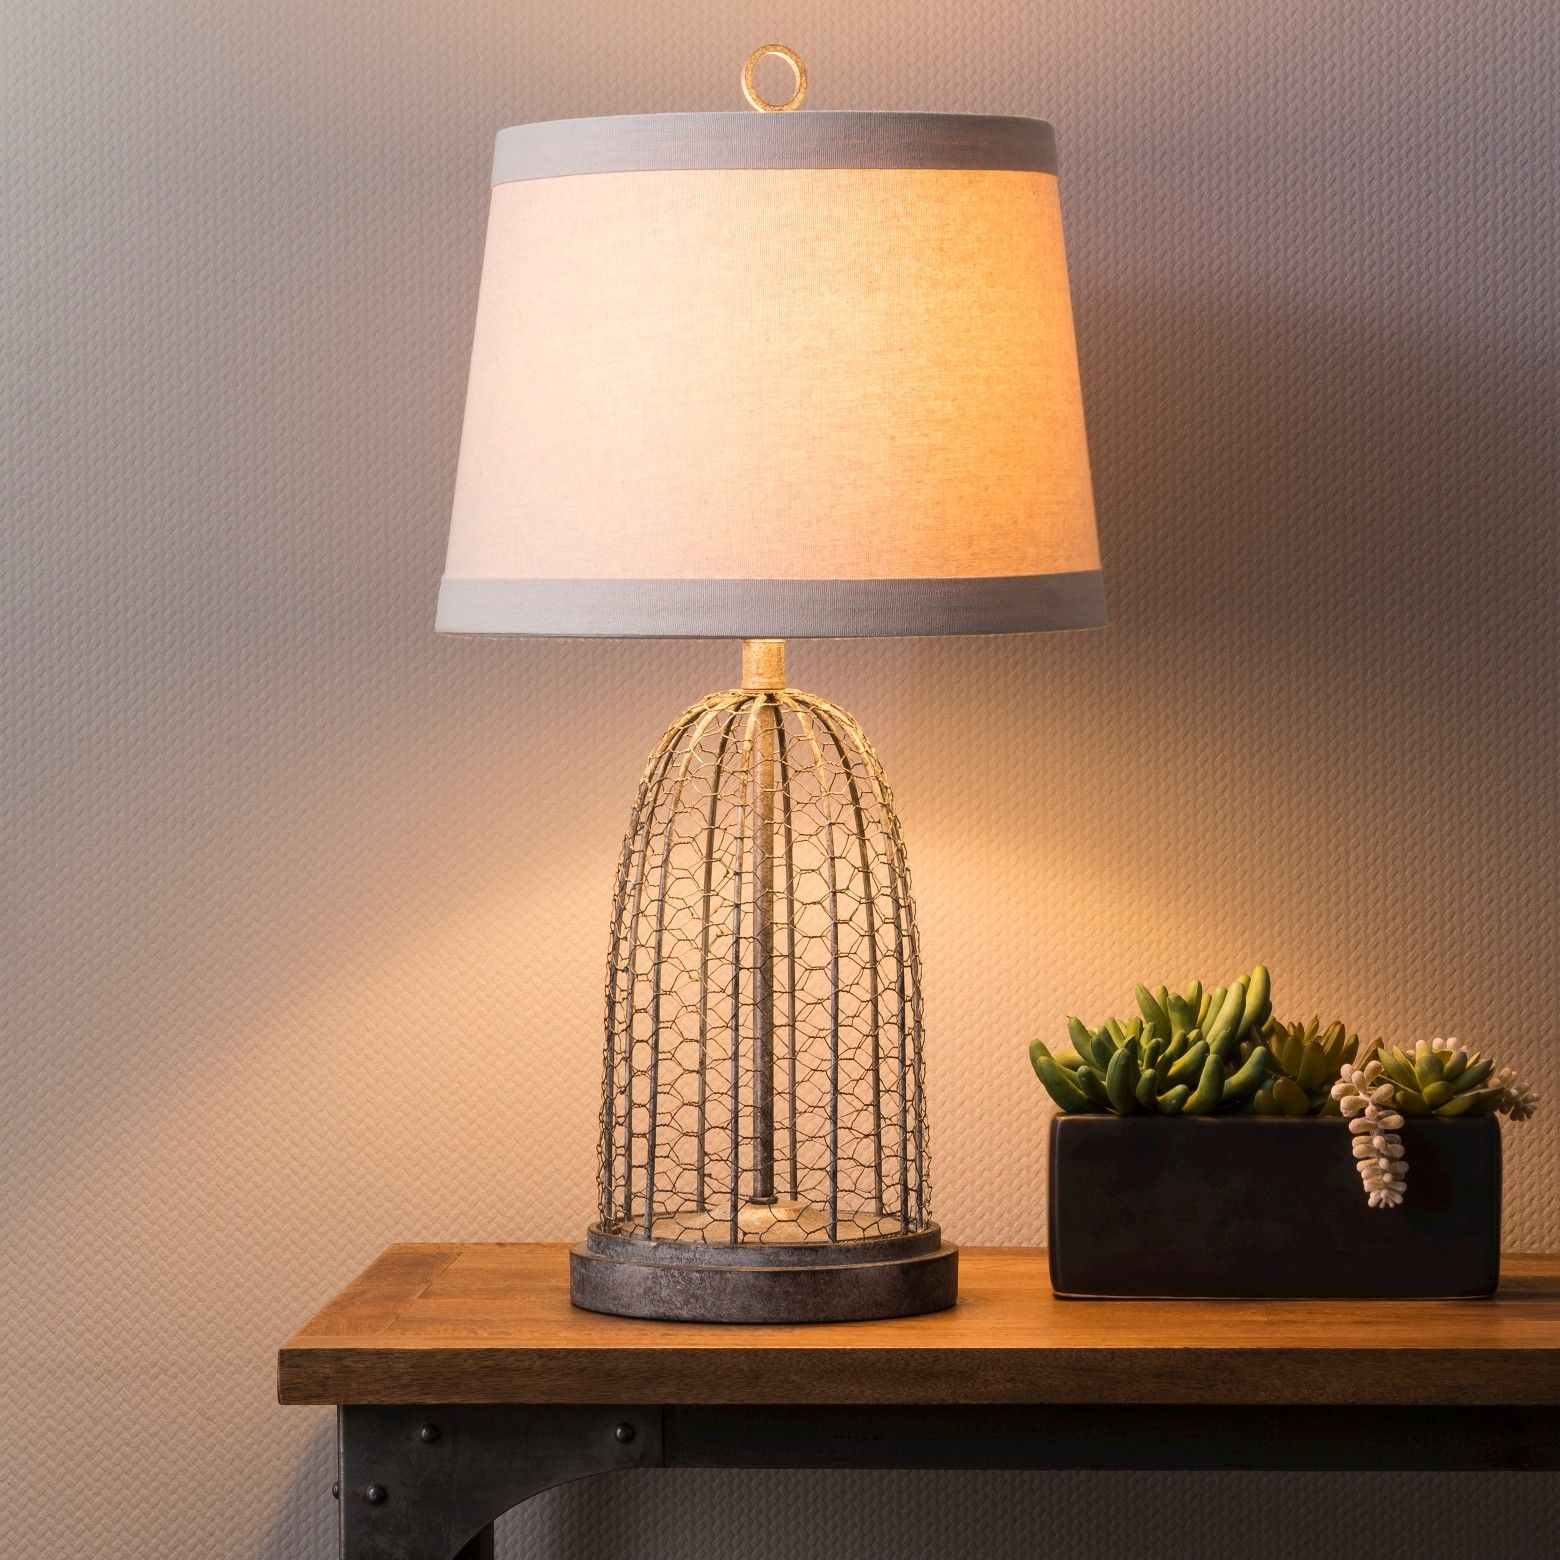 Metal and resin• inspired by vintage cloche made of bird chicken wire cagethe baiter table lamp in grey wire from beekman 1802 farmhouse was